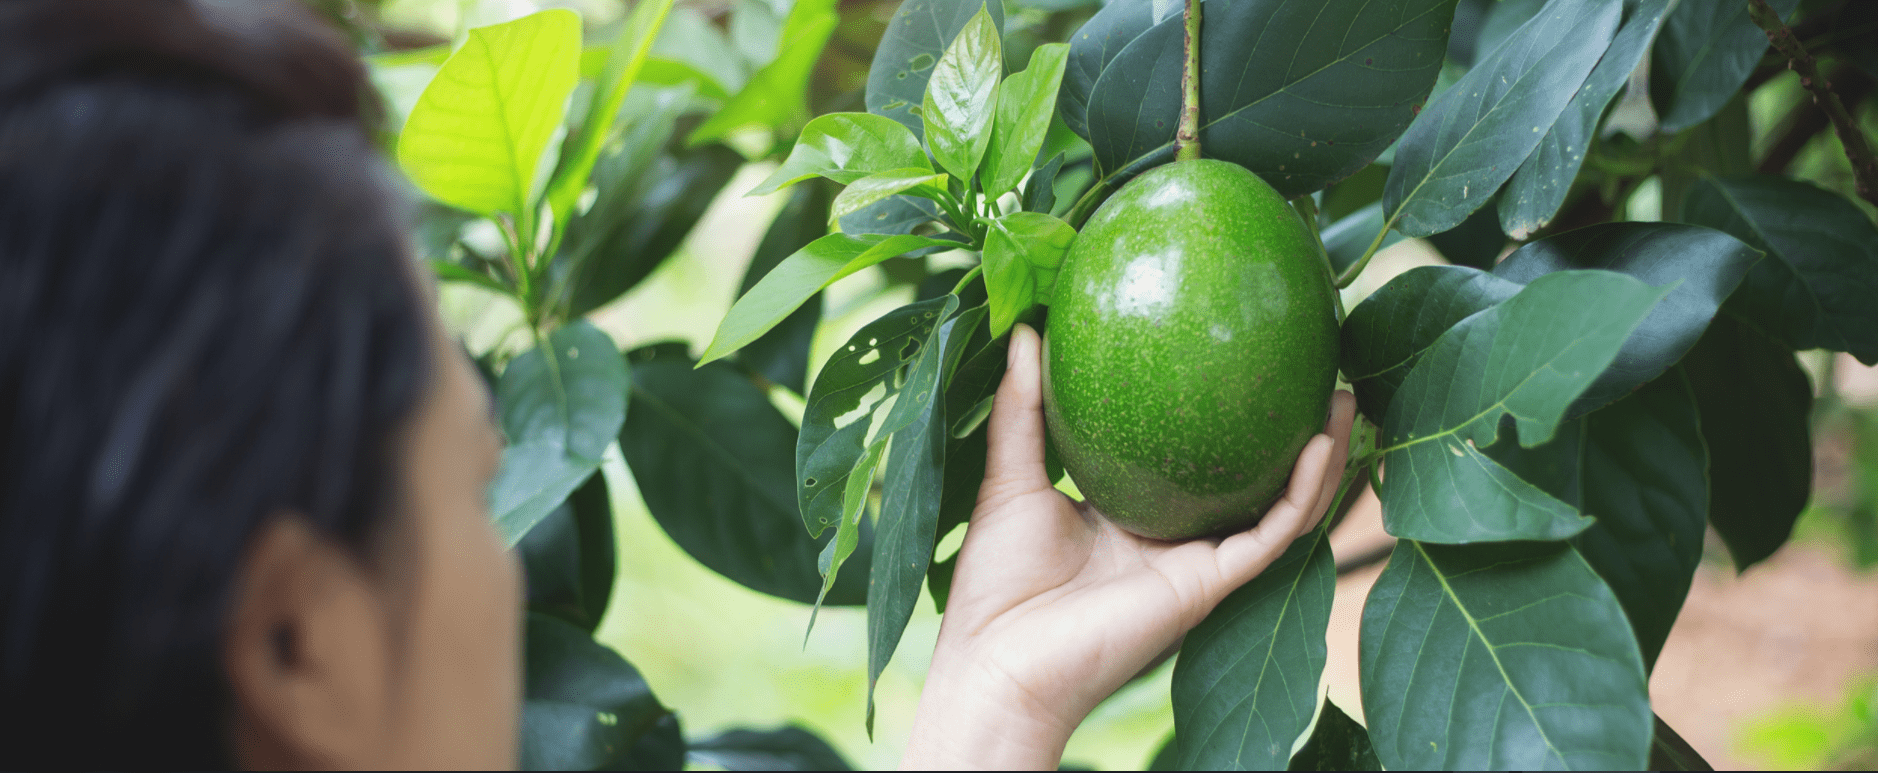 A woman picks an avocado from a tree